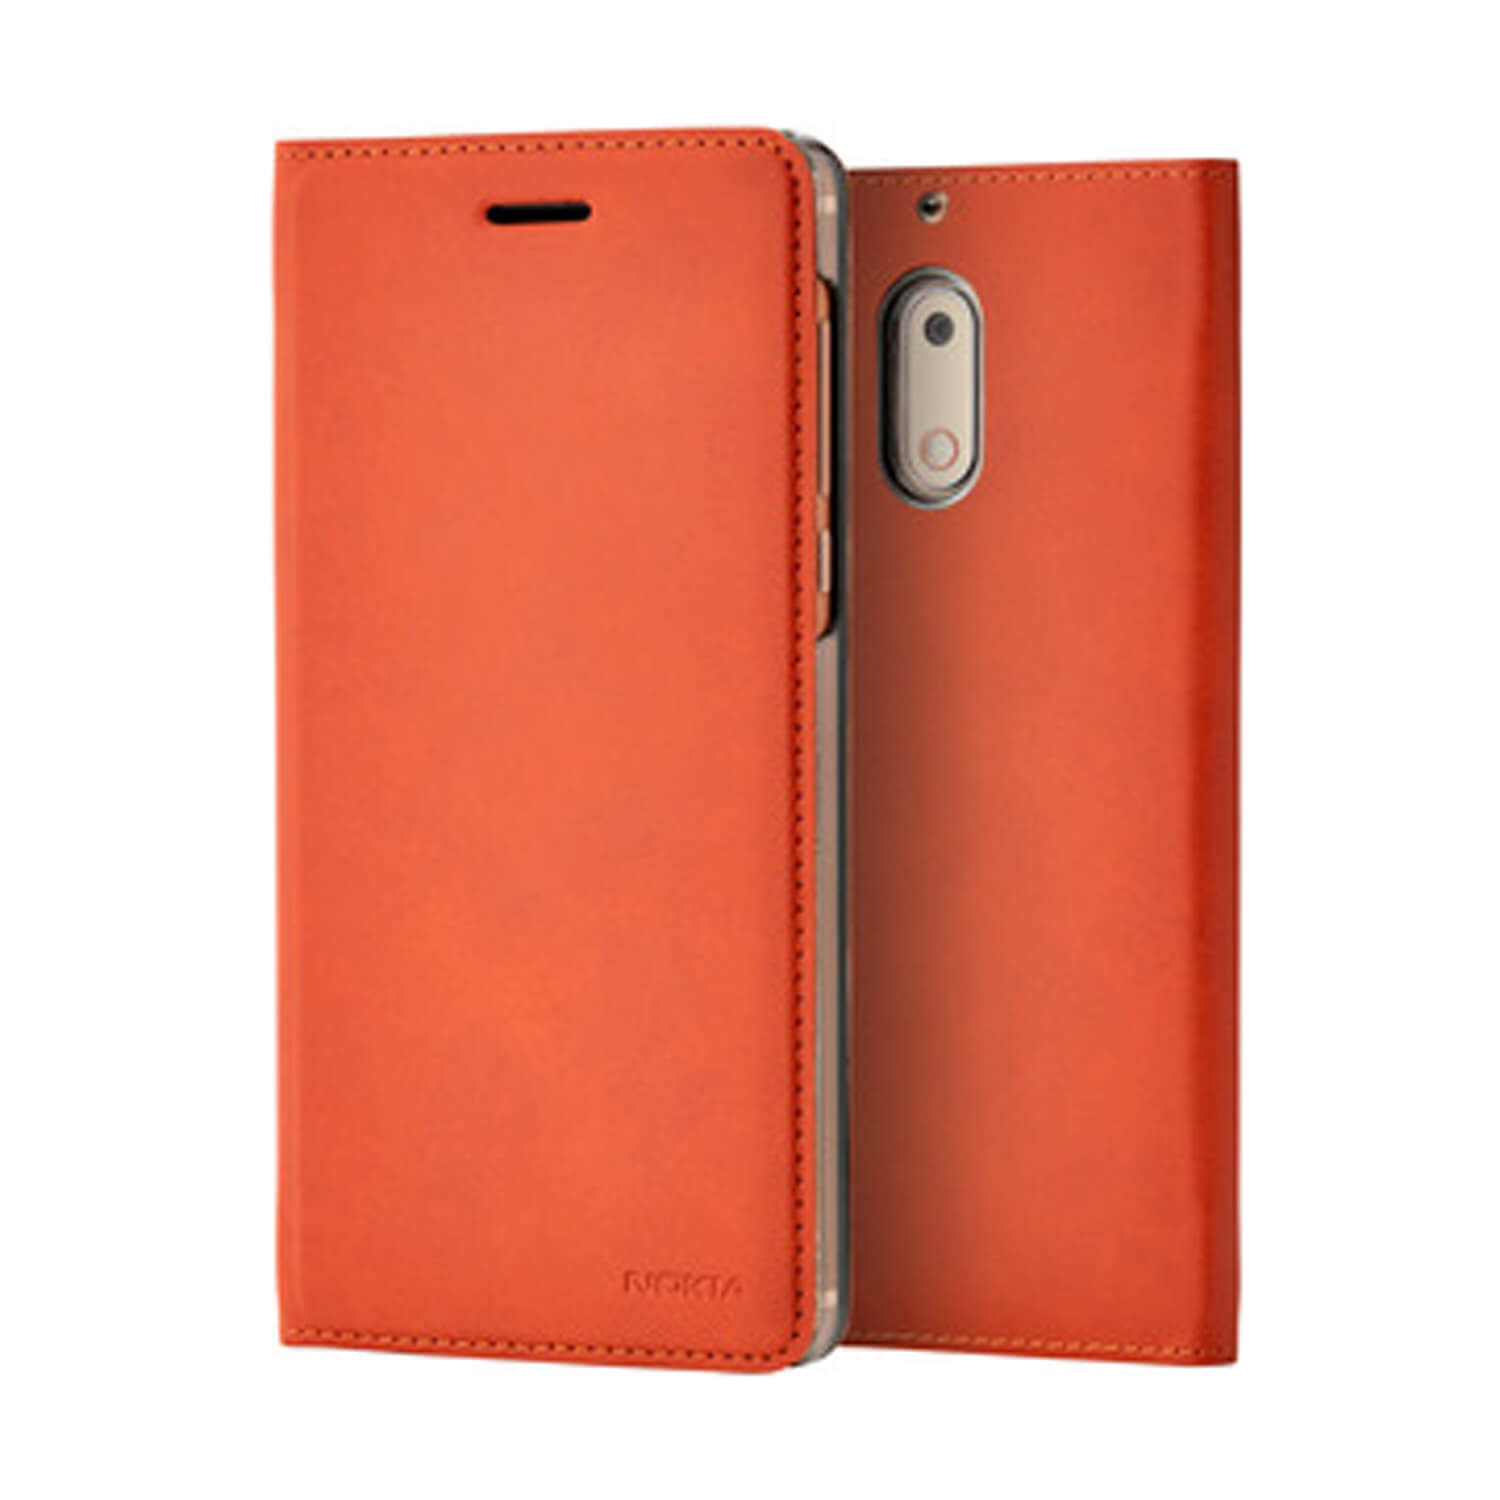 Nokia Slim Flip CP-301 pouzdro Nokia 6 copper brown